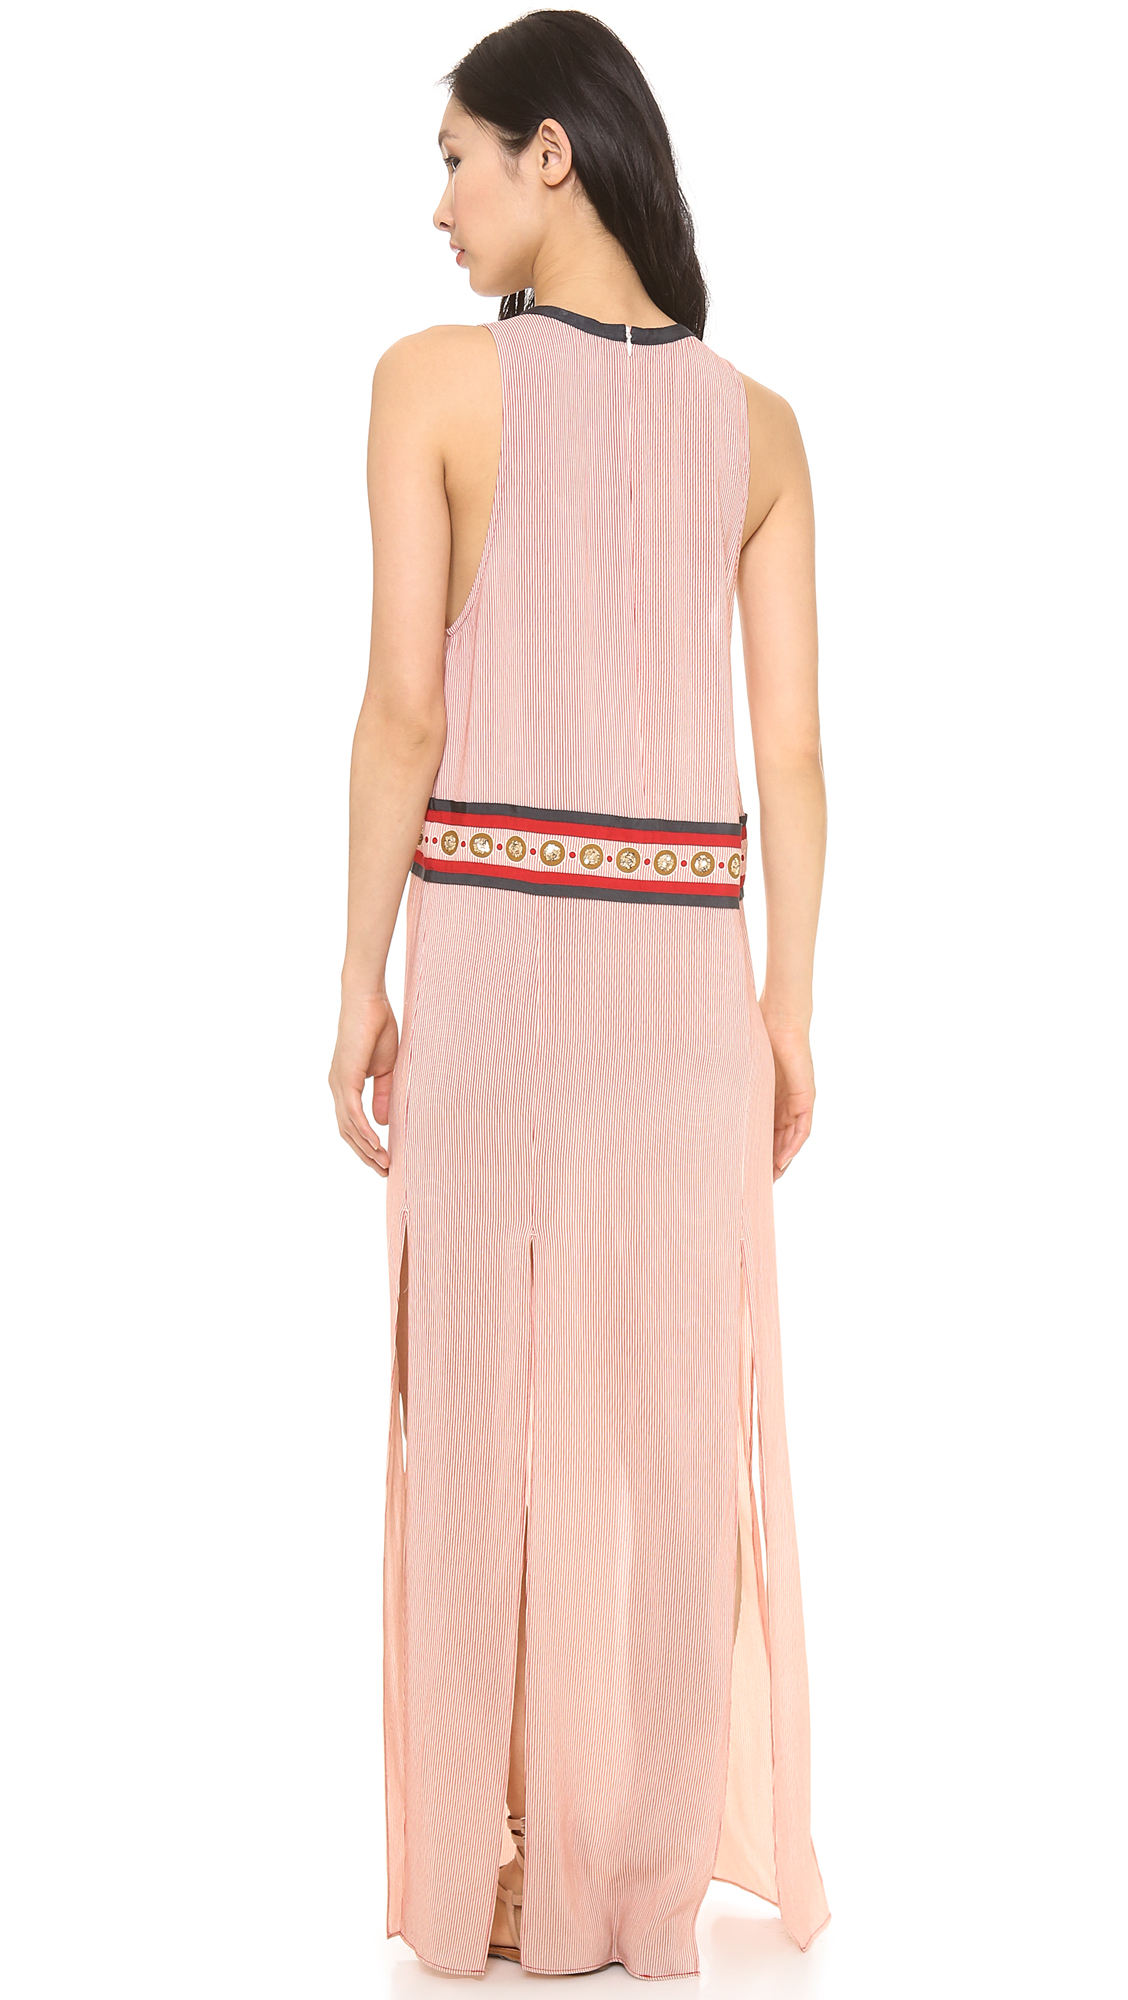 The Charmer Pages Lisa Kudrow For More: Sass & Bide The Charmer Maxi Dress In Pink